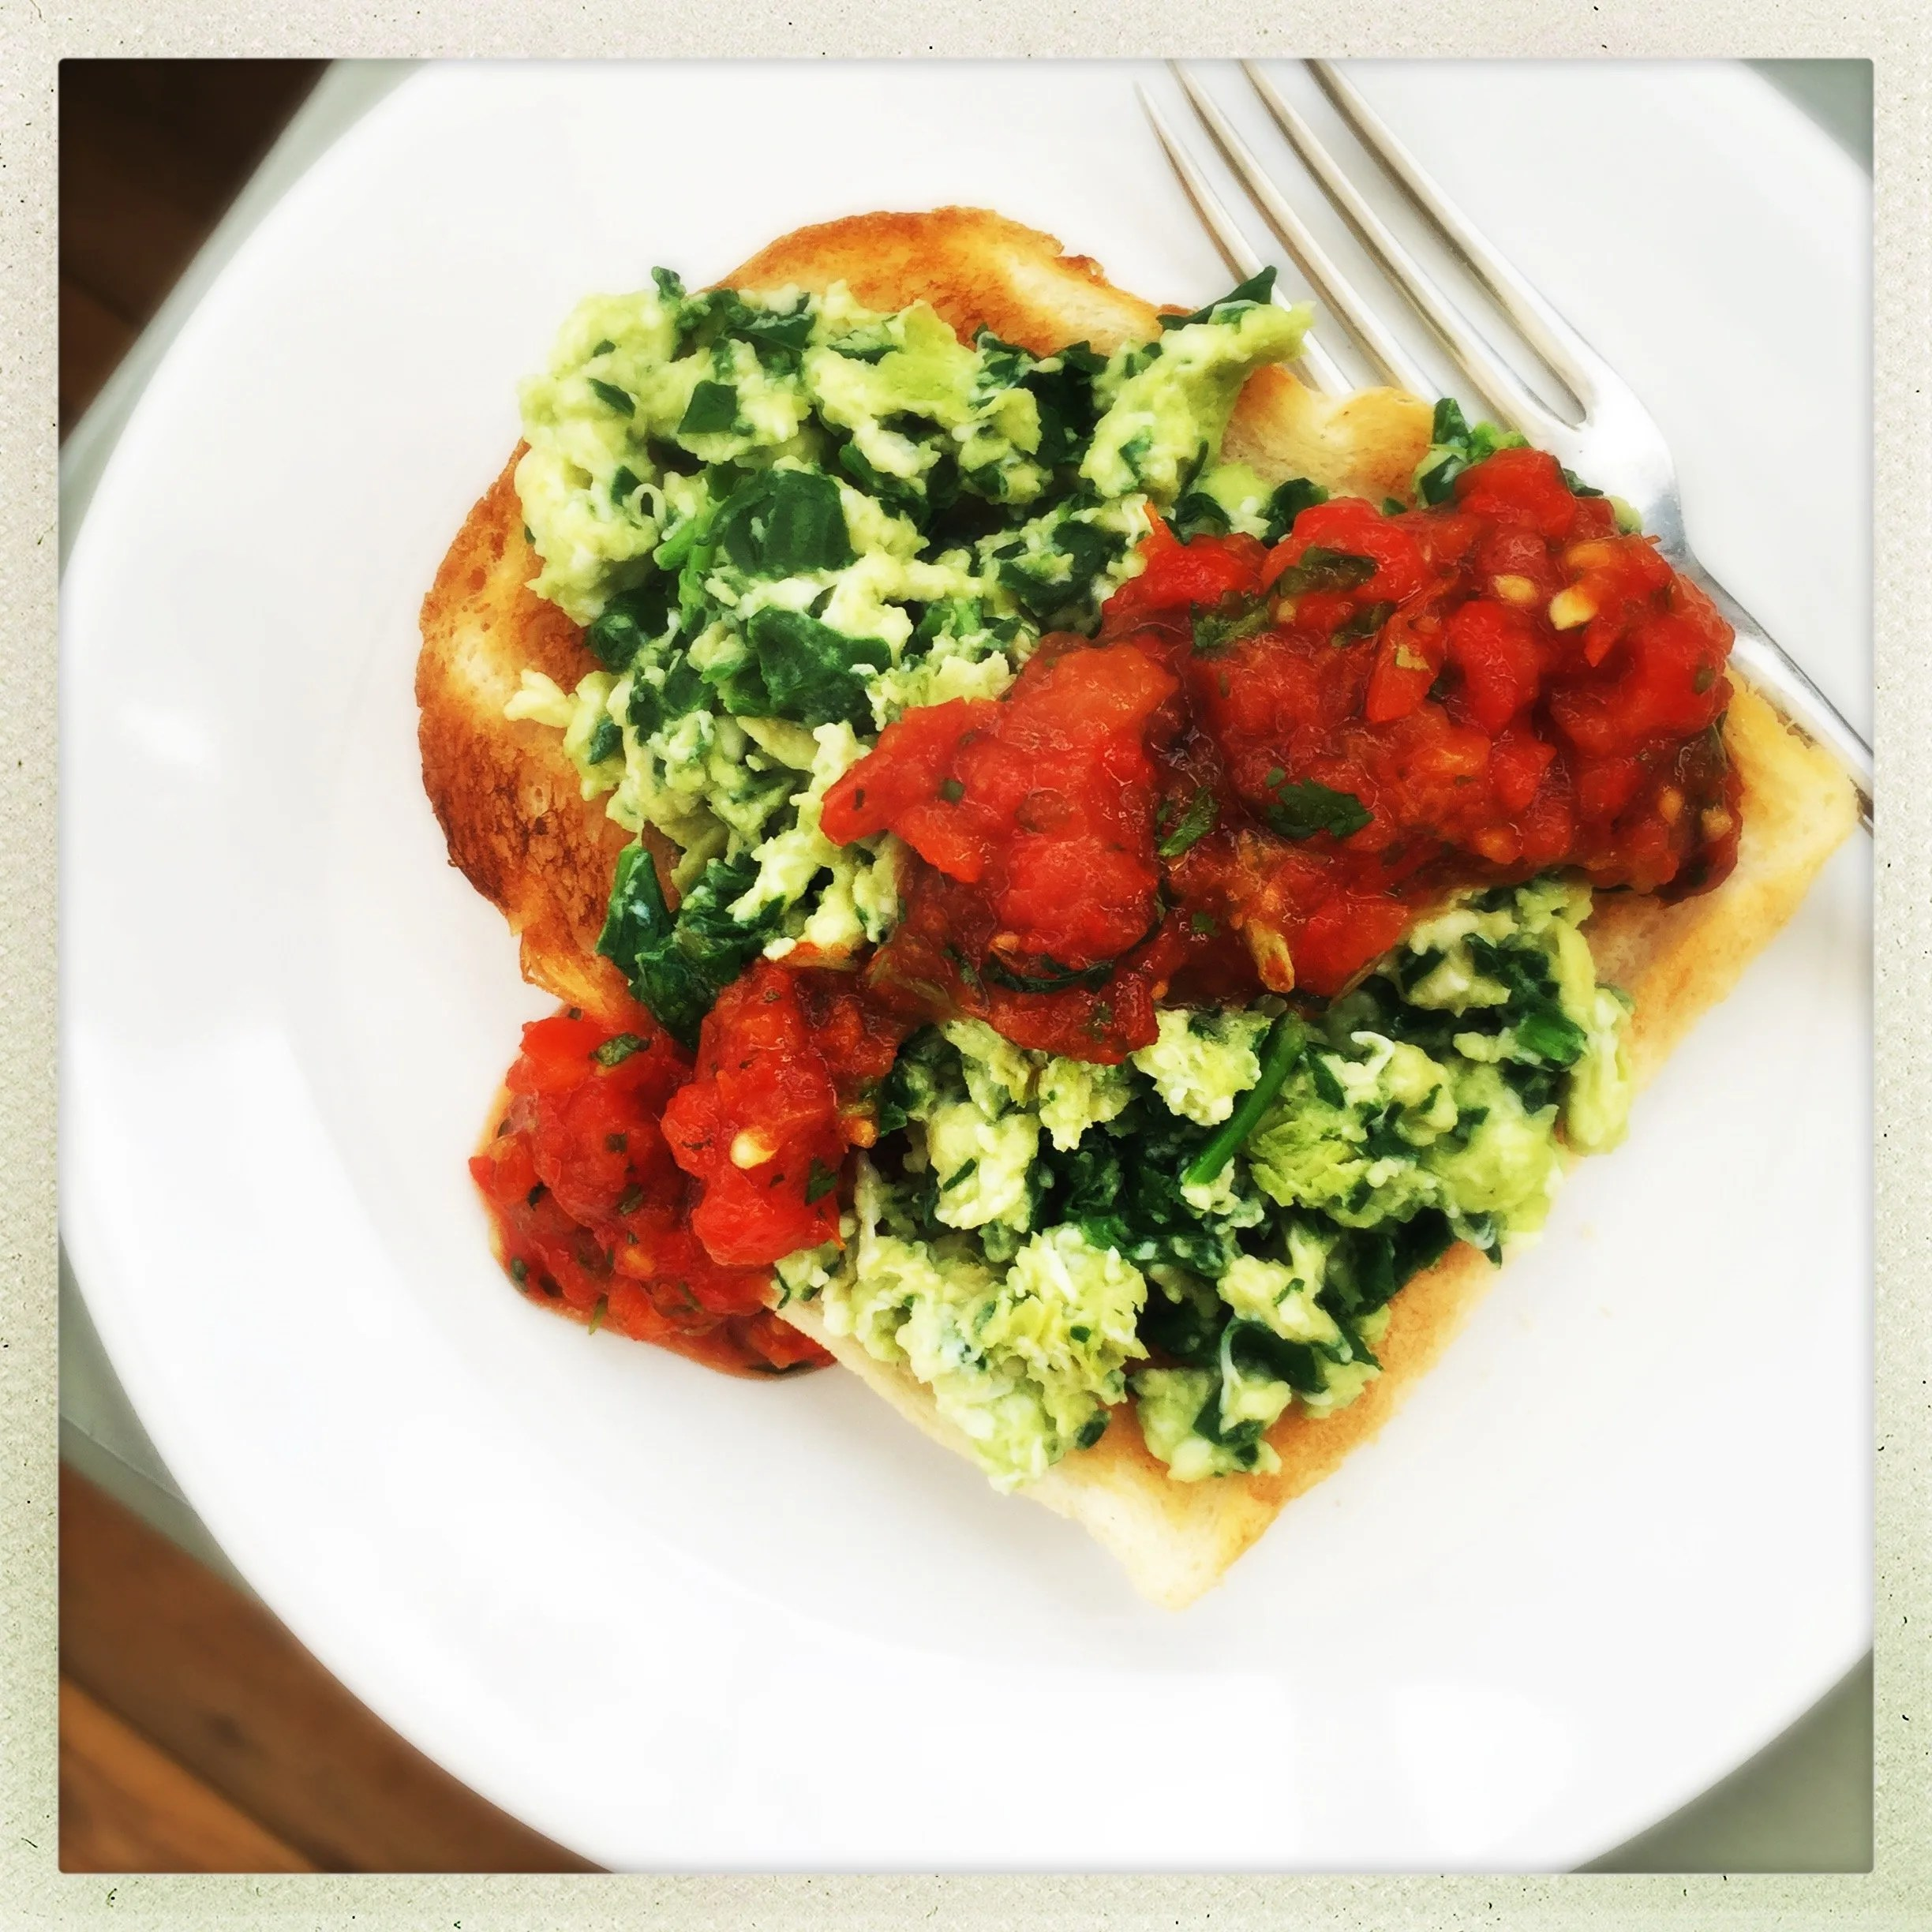 Green eggs on toast